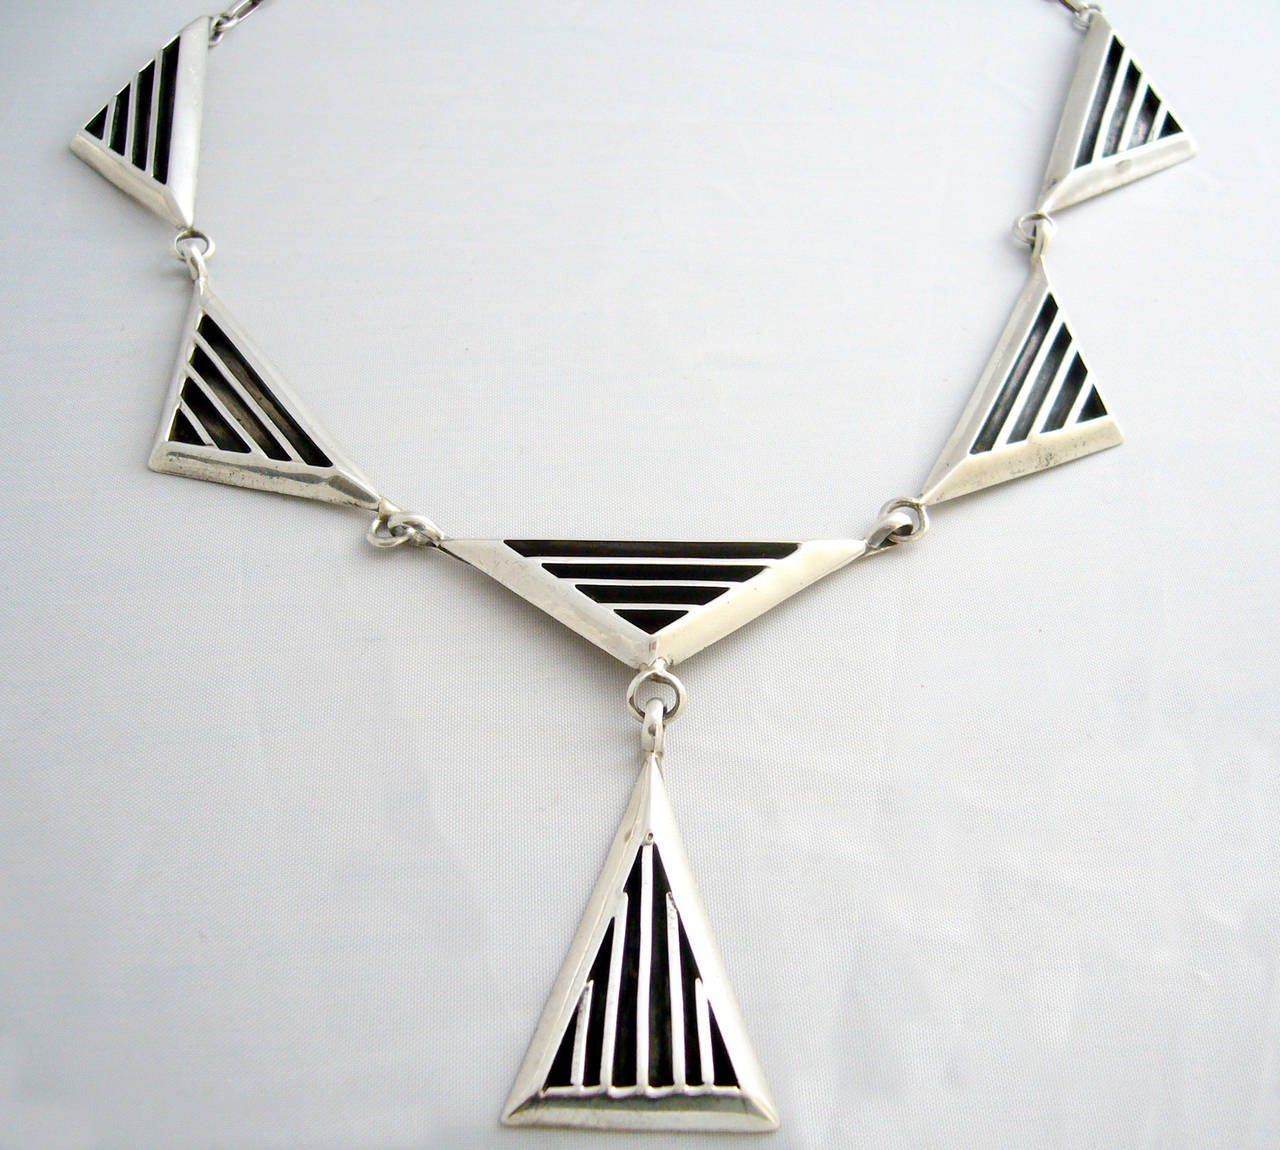 A sterling silver necklace with oxidized recessed design within triangle links by Jack Nutting of San Francisco circa 1960. Necklace has 18